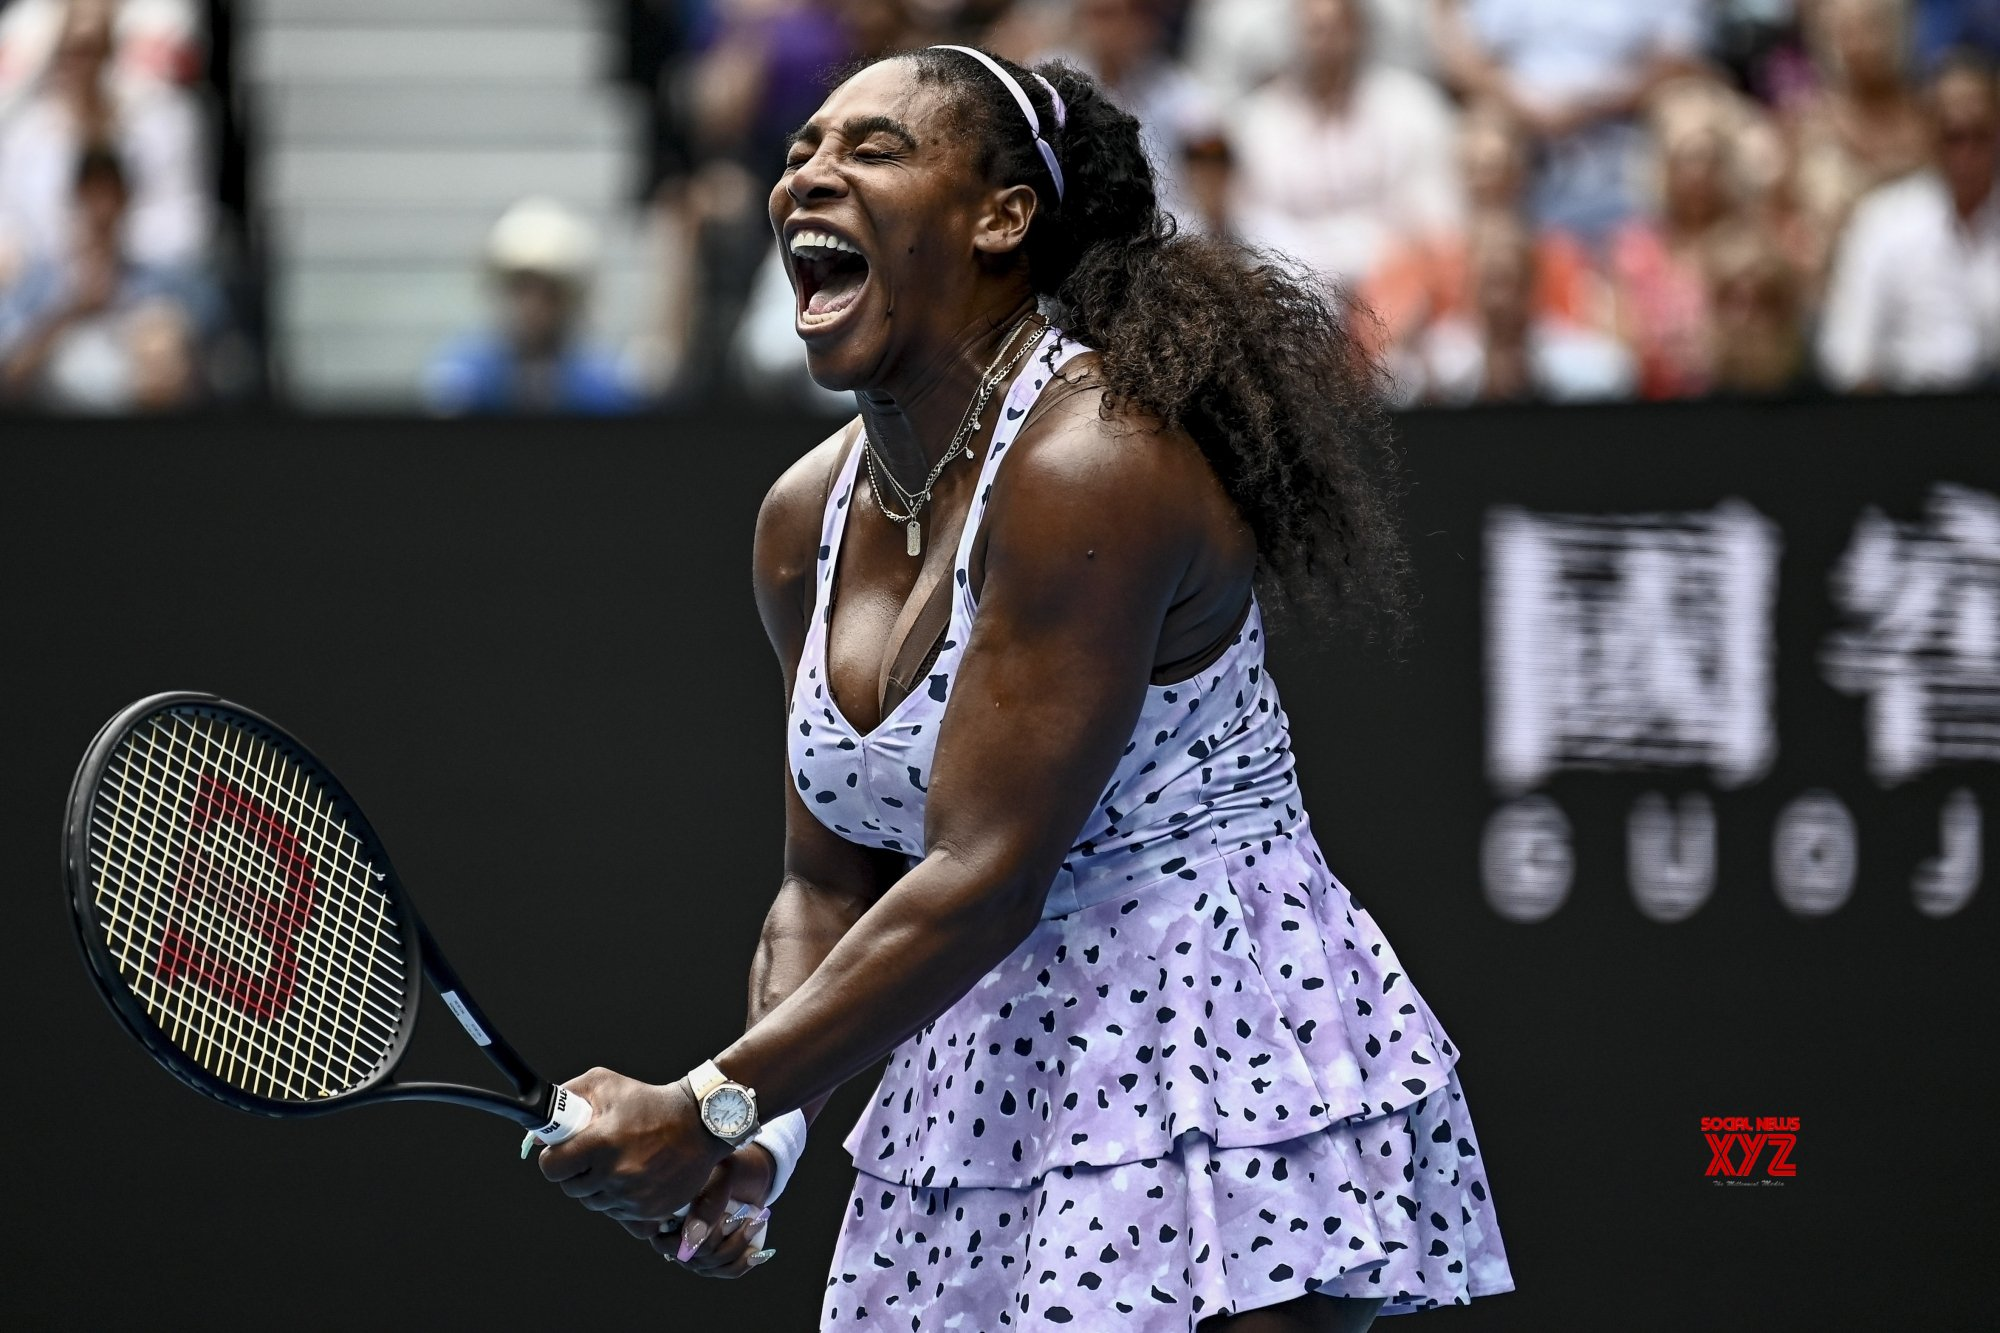 Day four at the Australian Open